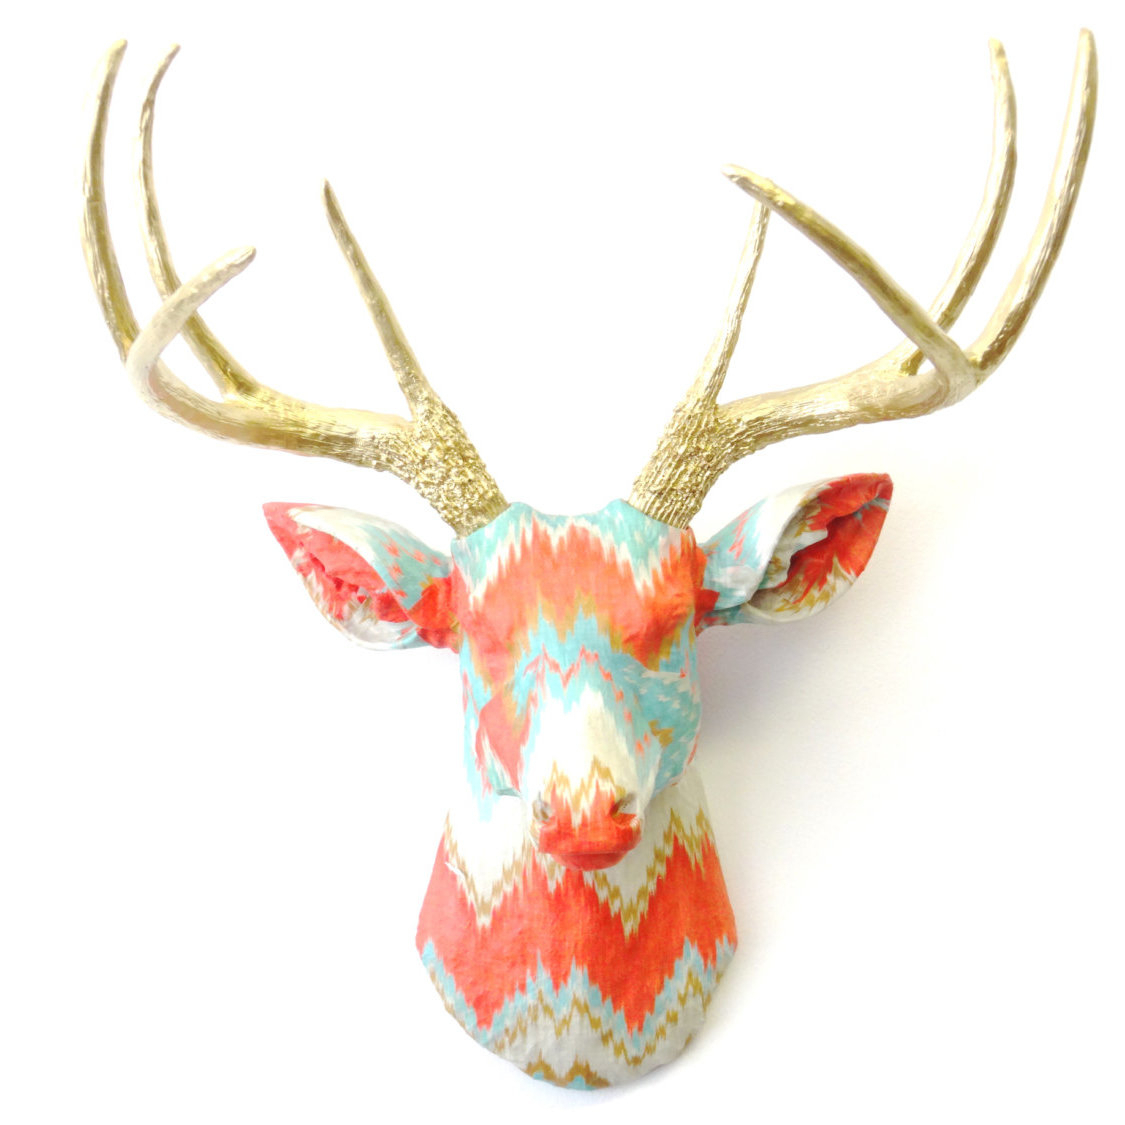 Most Popular Brayden Studio Faux Taxidermy Authentic Fabric Deer Head Wall Décor Inside Atlantis Faux Taxidermy Wall Decor (View 9 of 20)